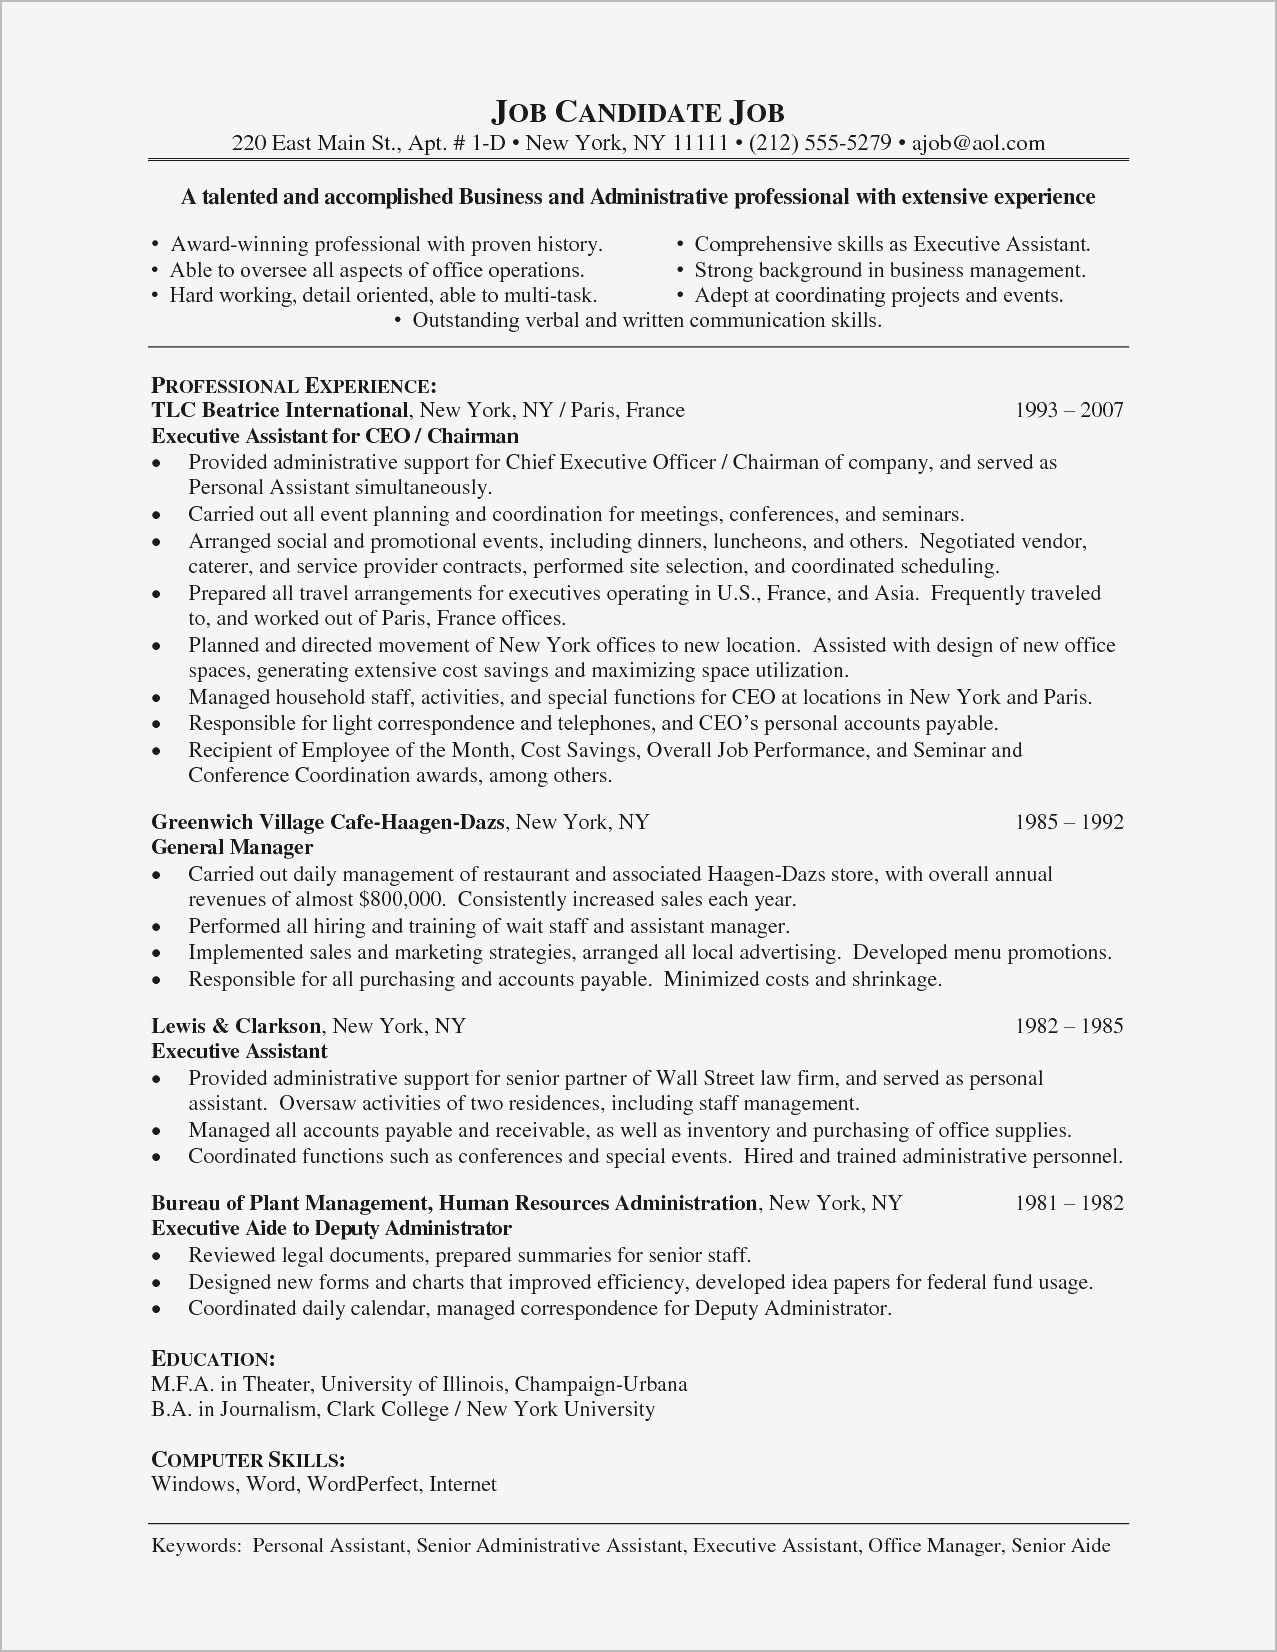 Open Office Cover Letter Template - Open Fice Database Templates